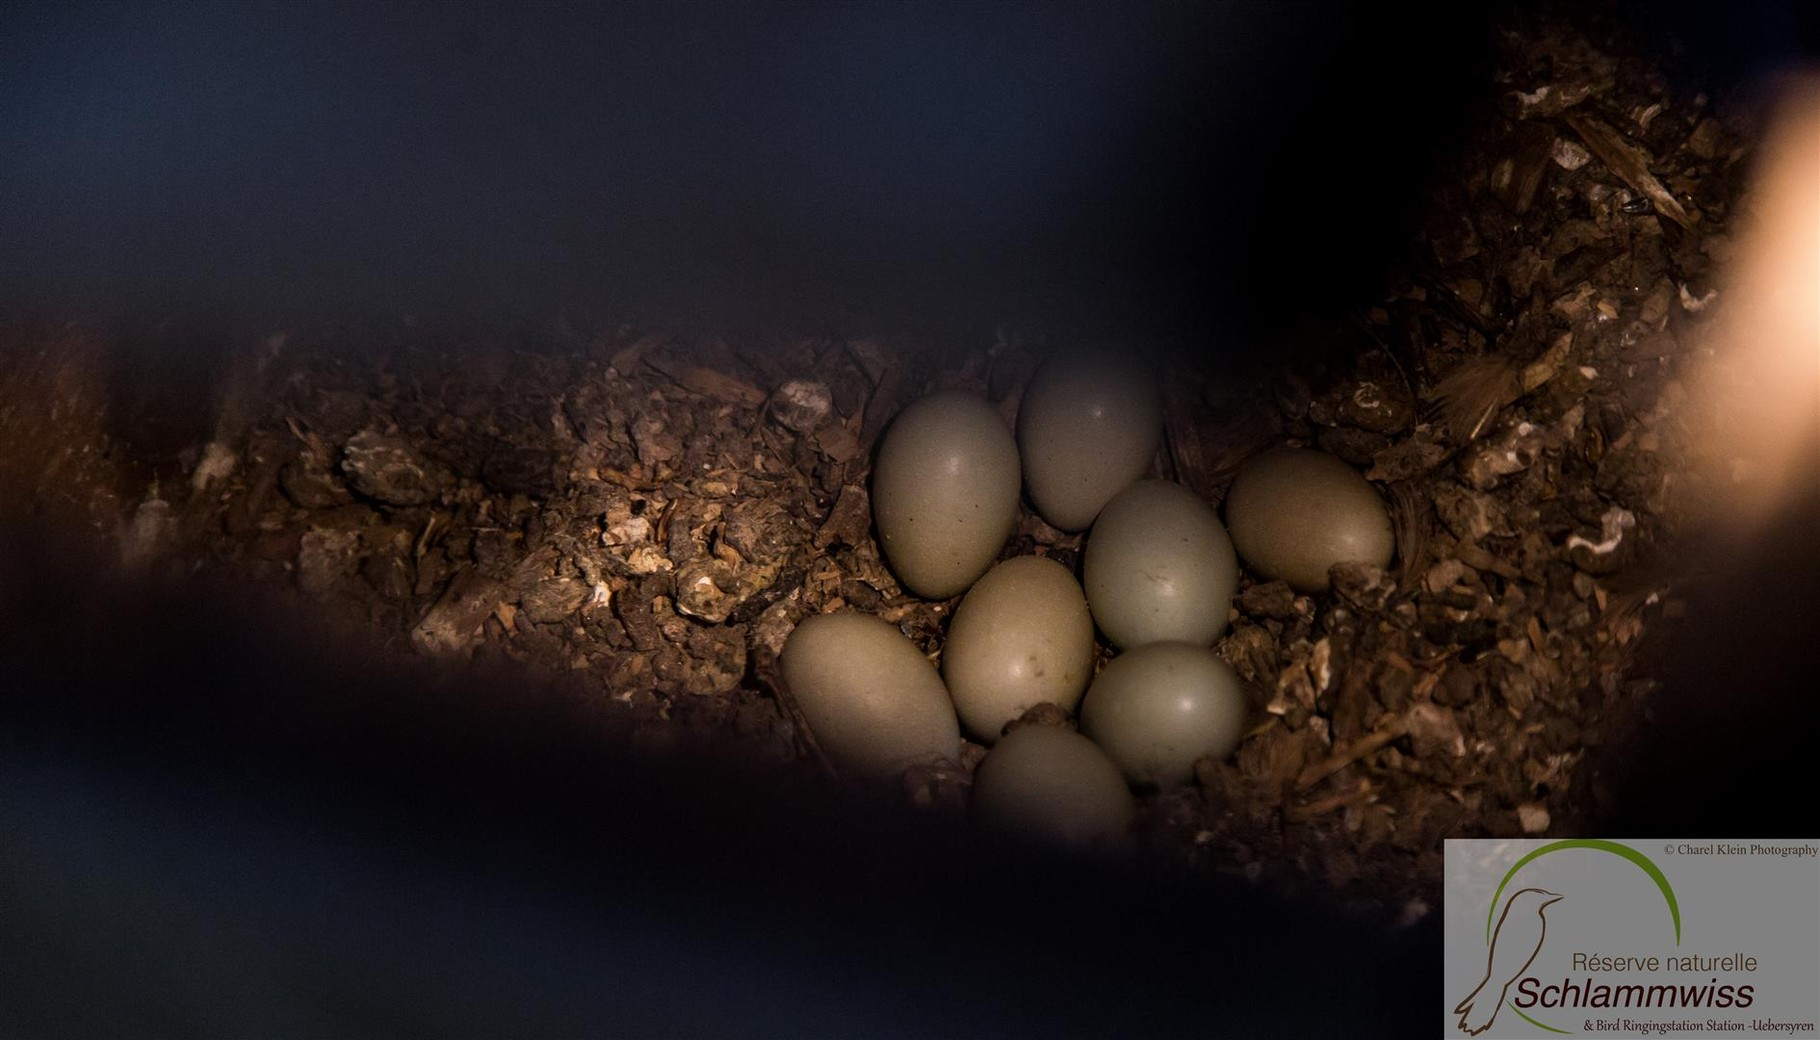 new eggs in the woodbox (no flash)